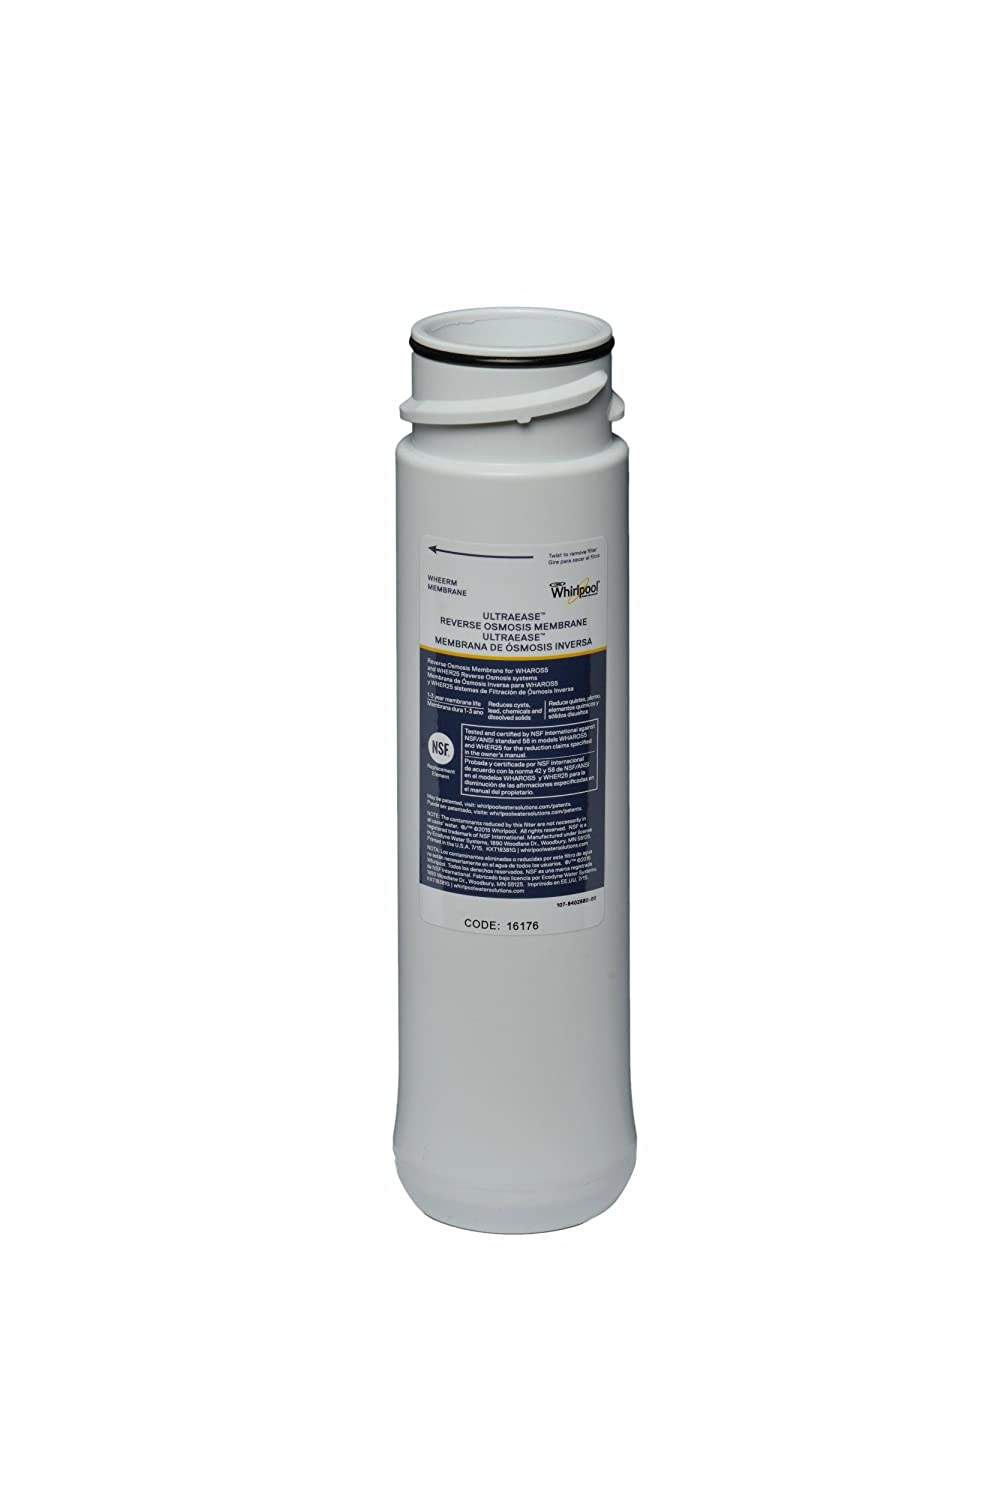 Whirlpool WHEERM Reverse Osmosis Replacement Membrane — Compatible With WHAPSRO, WHAROS5 & WHER25 Filtration Systems | Reduces Metals For Contaminant-Free, Great Tasting Water | 1-2 Year Lifespan